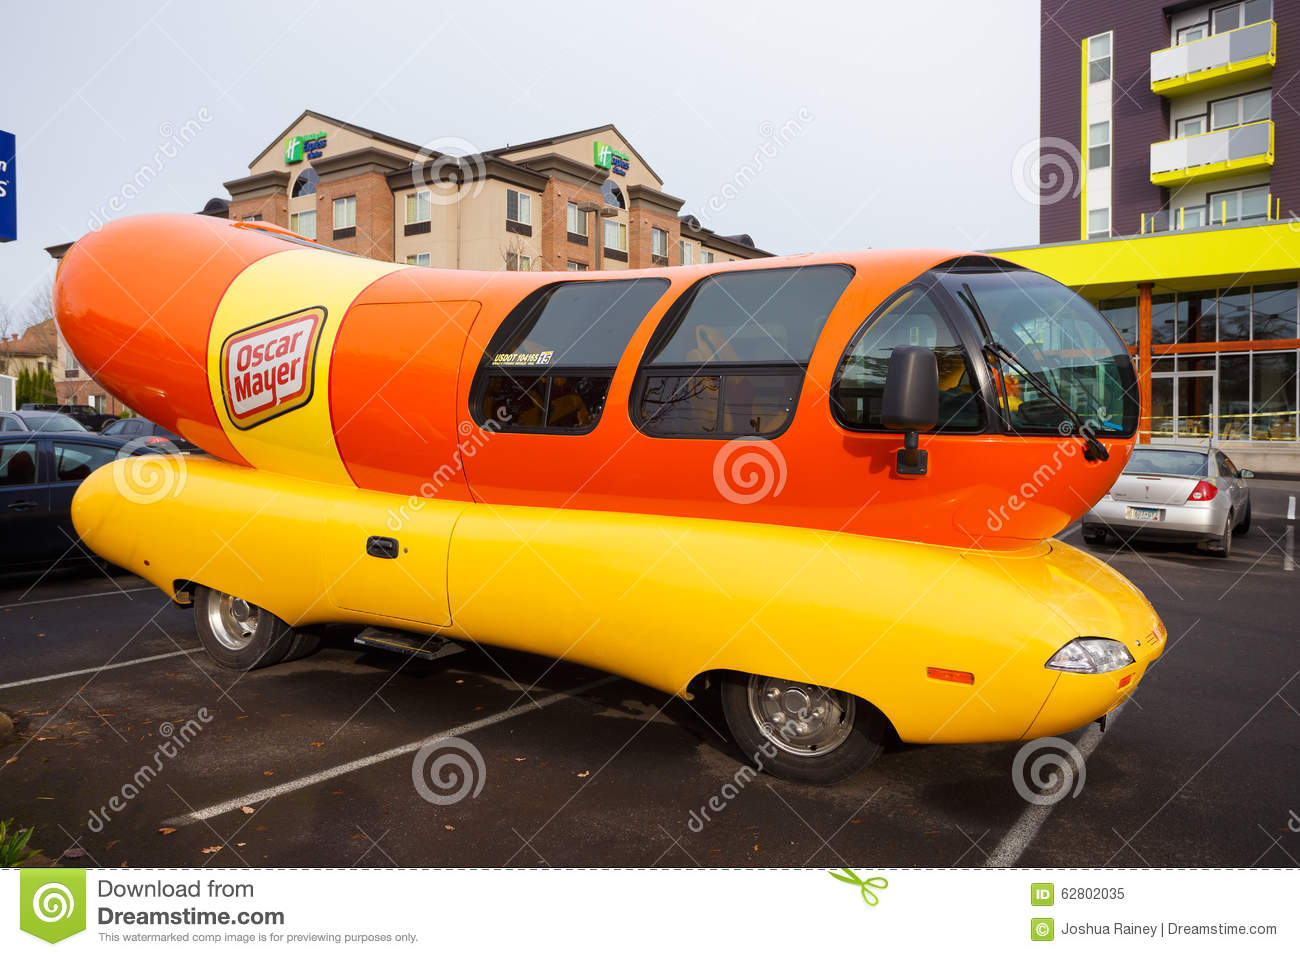 Watch also No Bologna Oscar Mayer Wienermobile Crashes Near Harrisburg in addition Strange Vehicles together with History Of American Food Trucks further Wienermobile Facts. on oscar mayer wiener wagon